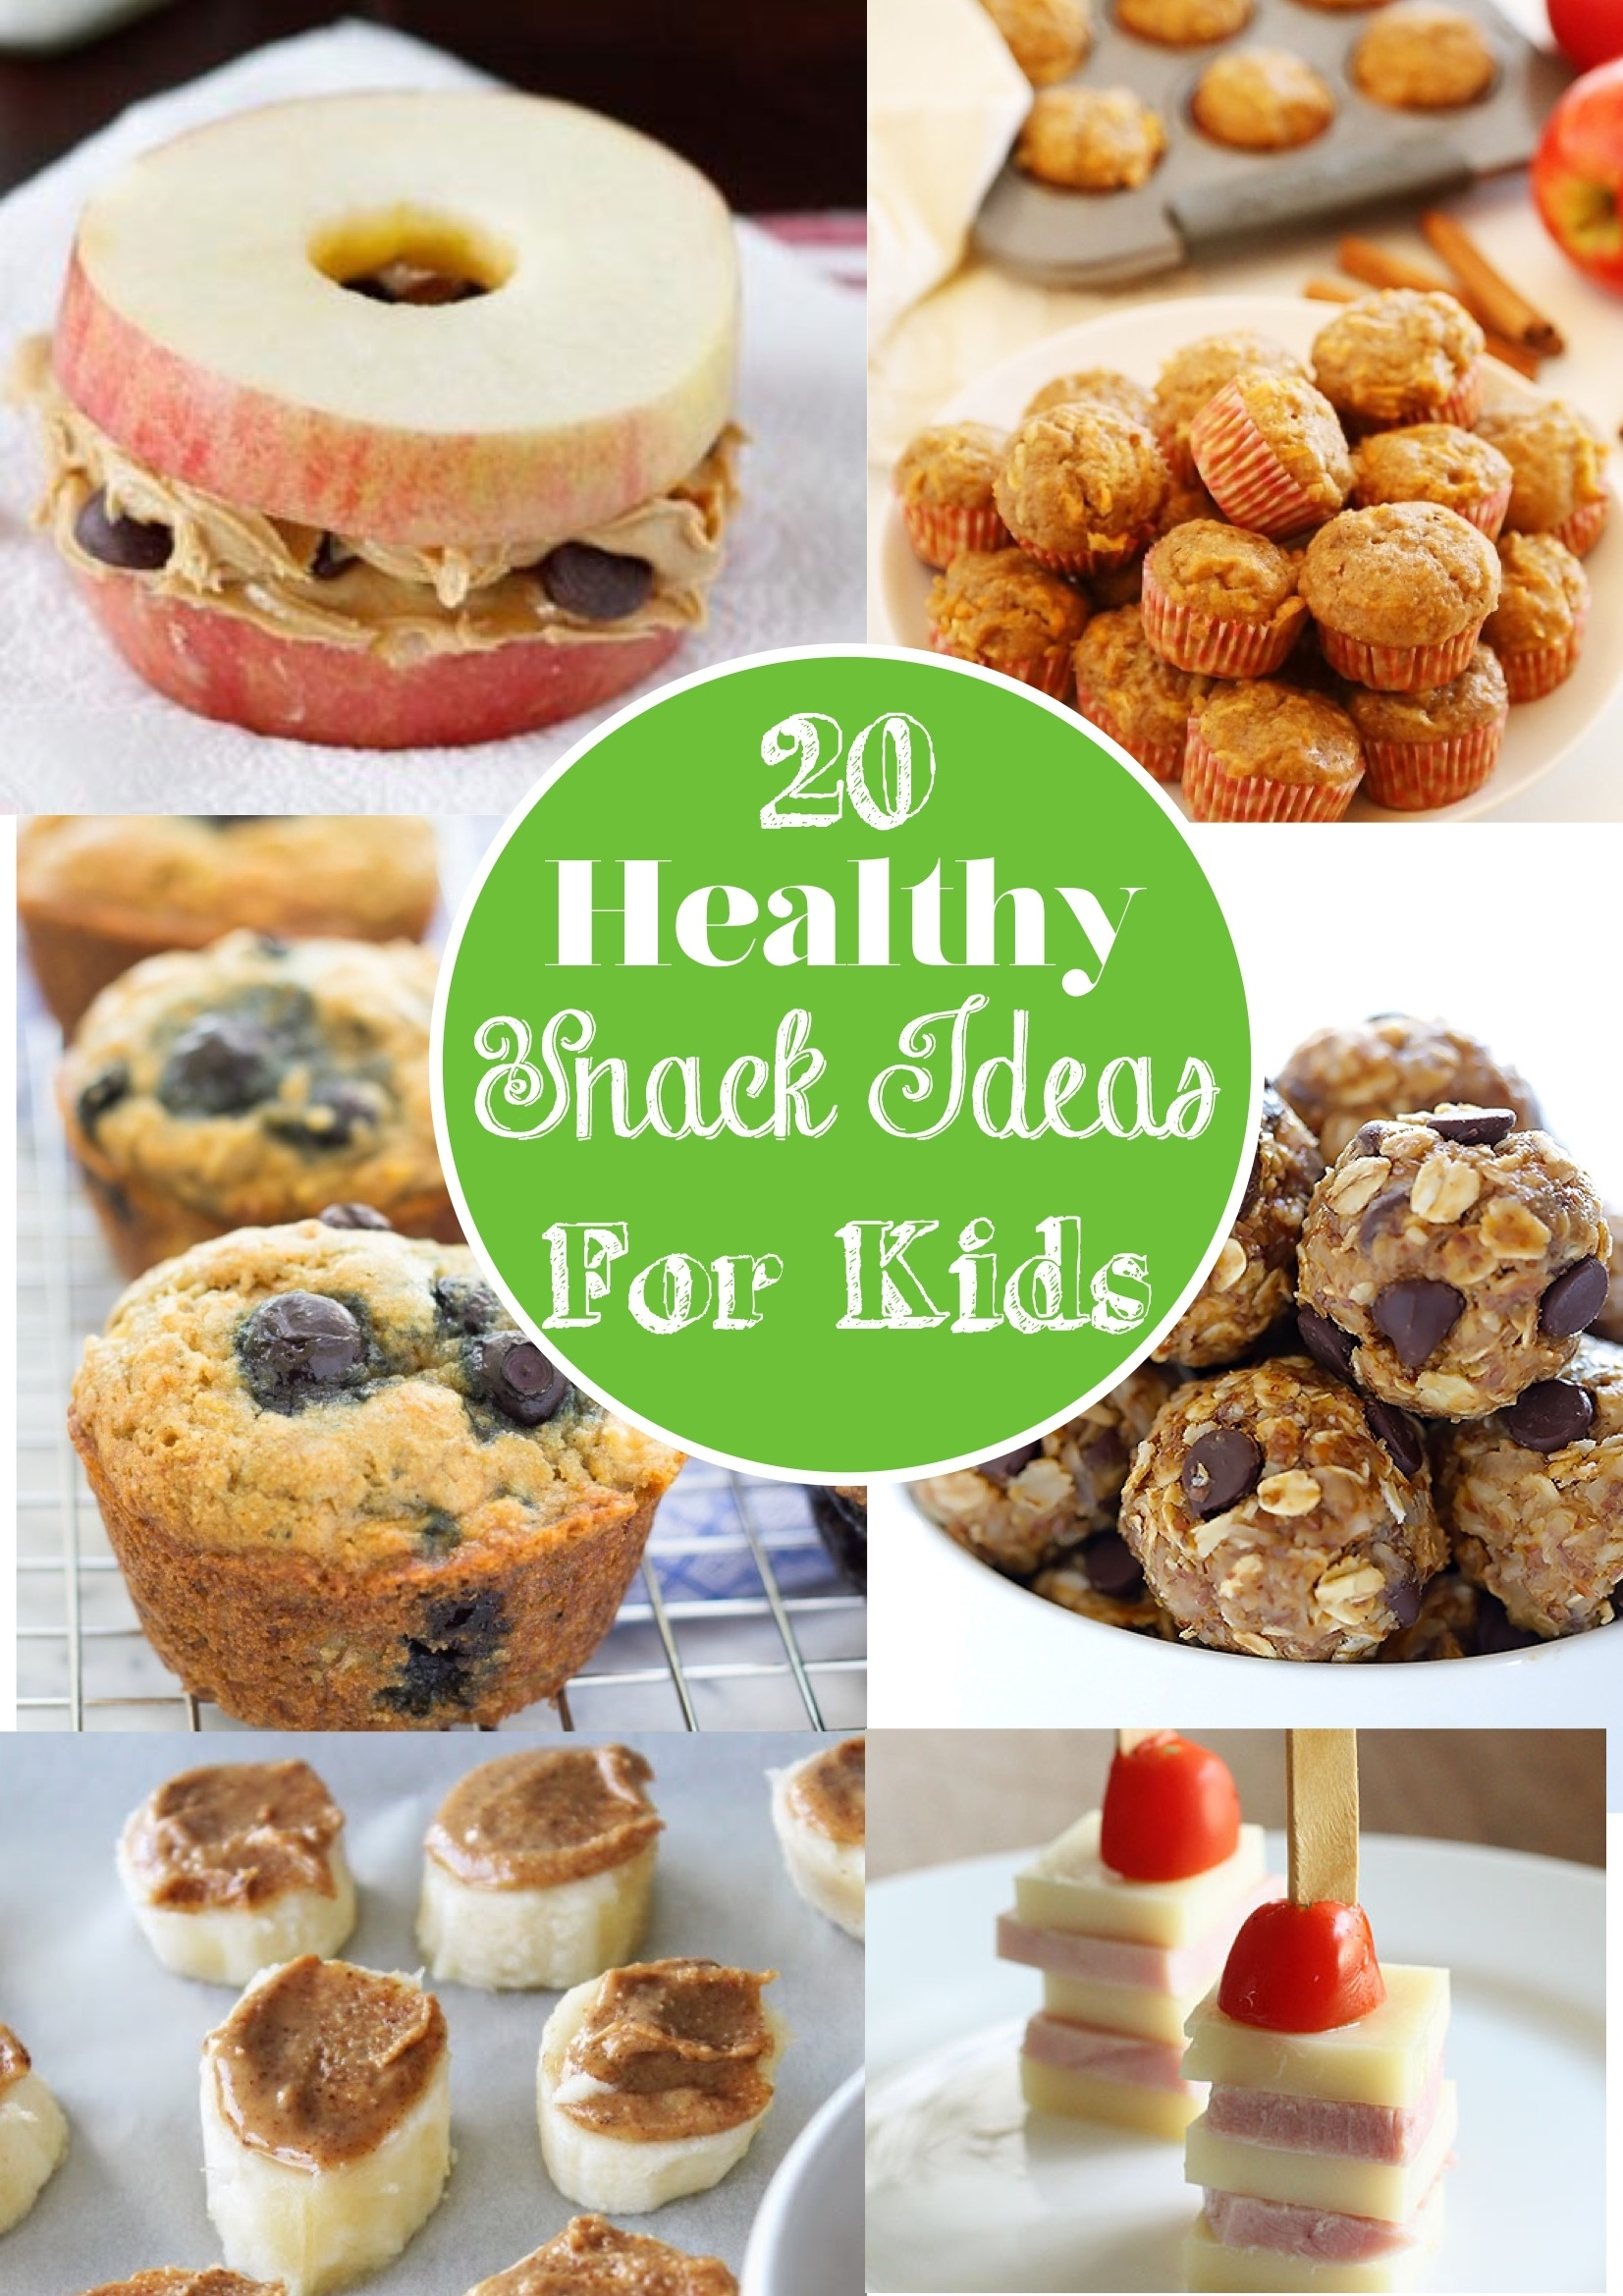 10 Amazing Snack Ideas For Kids School %name 2020